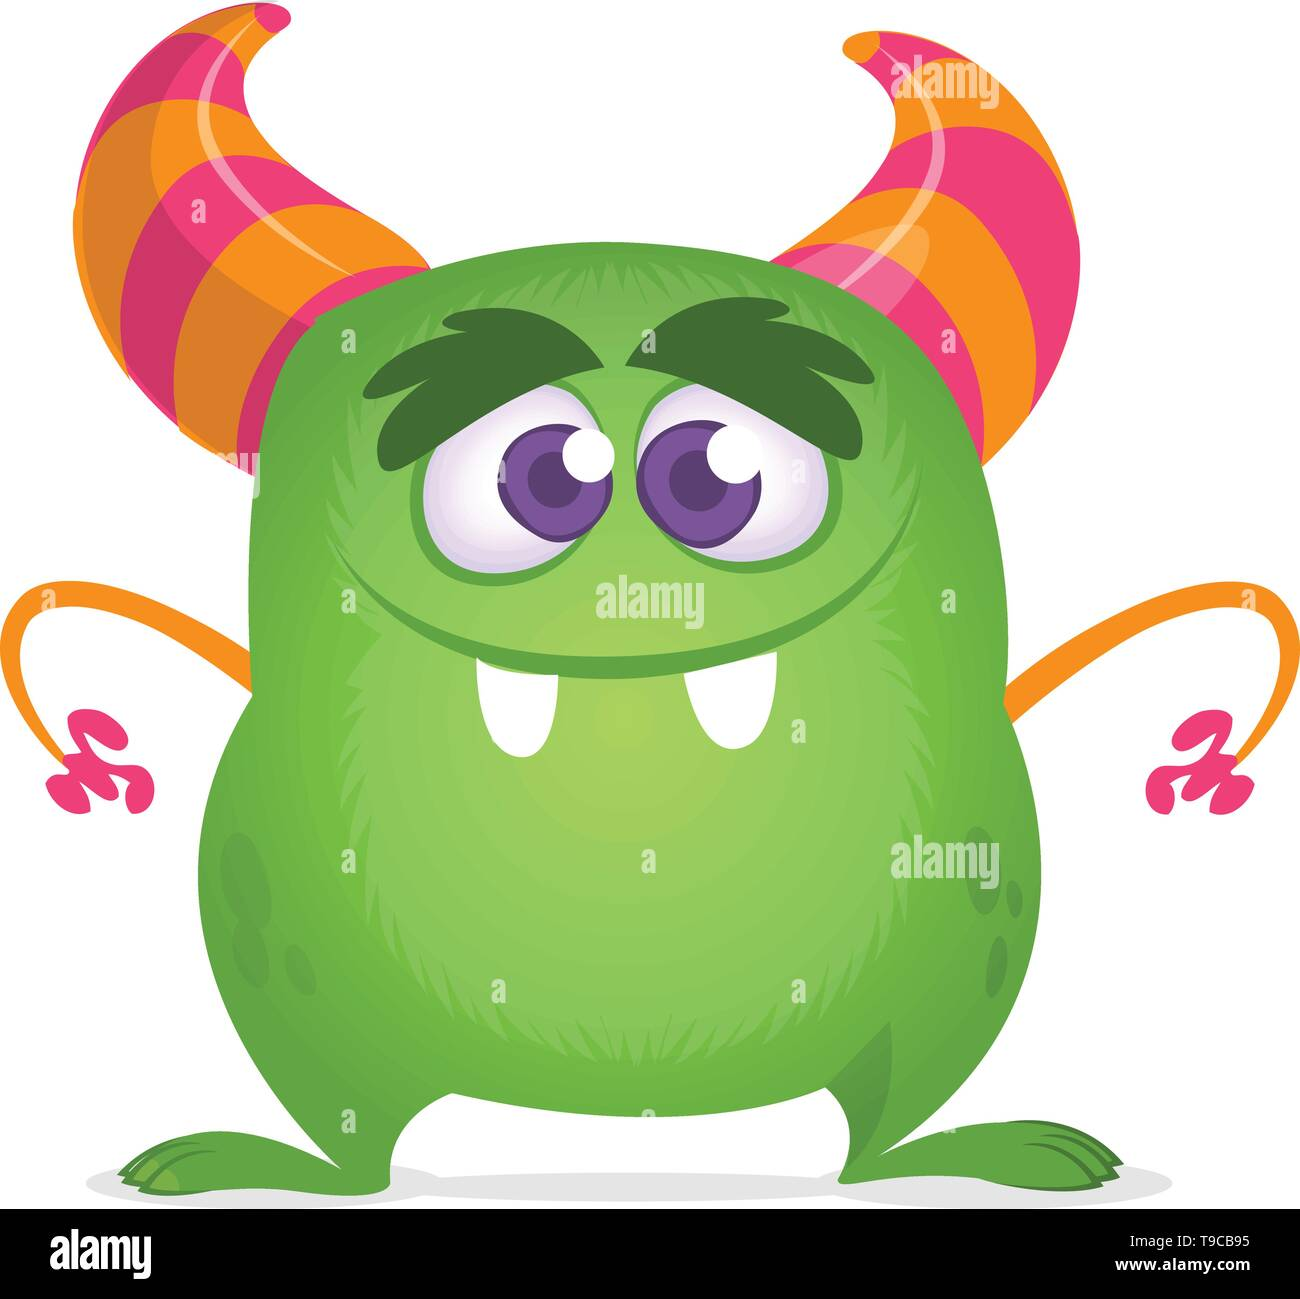 Cartoon green horned monster. Vector illustration isolated - Stock Image